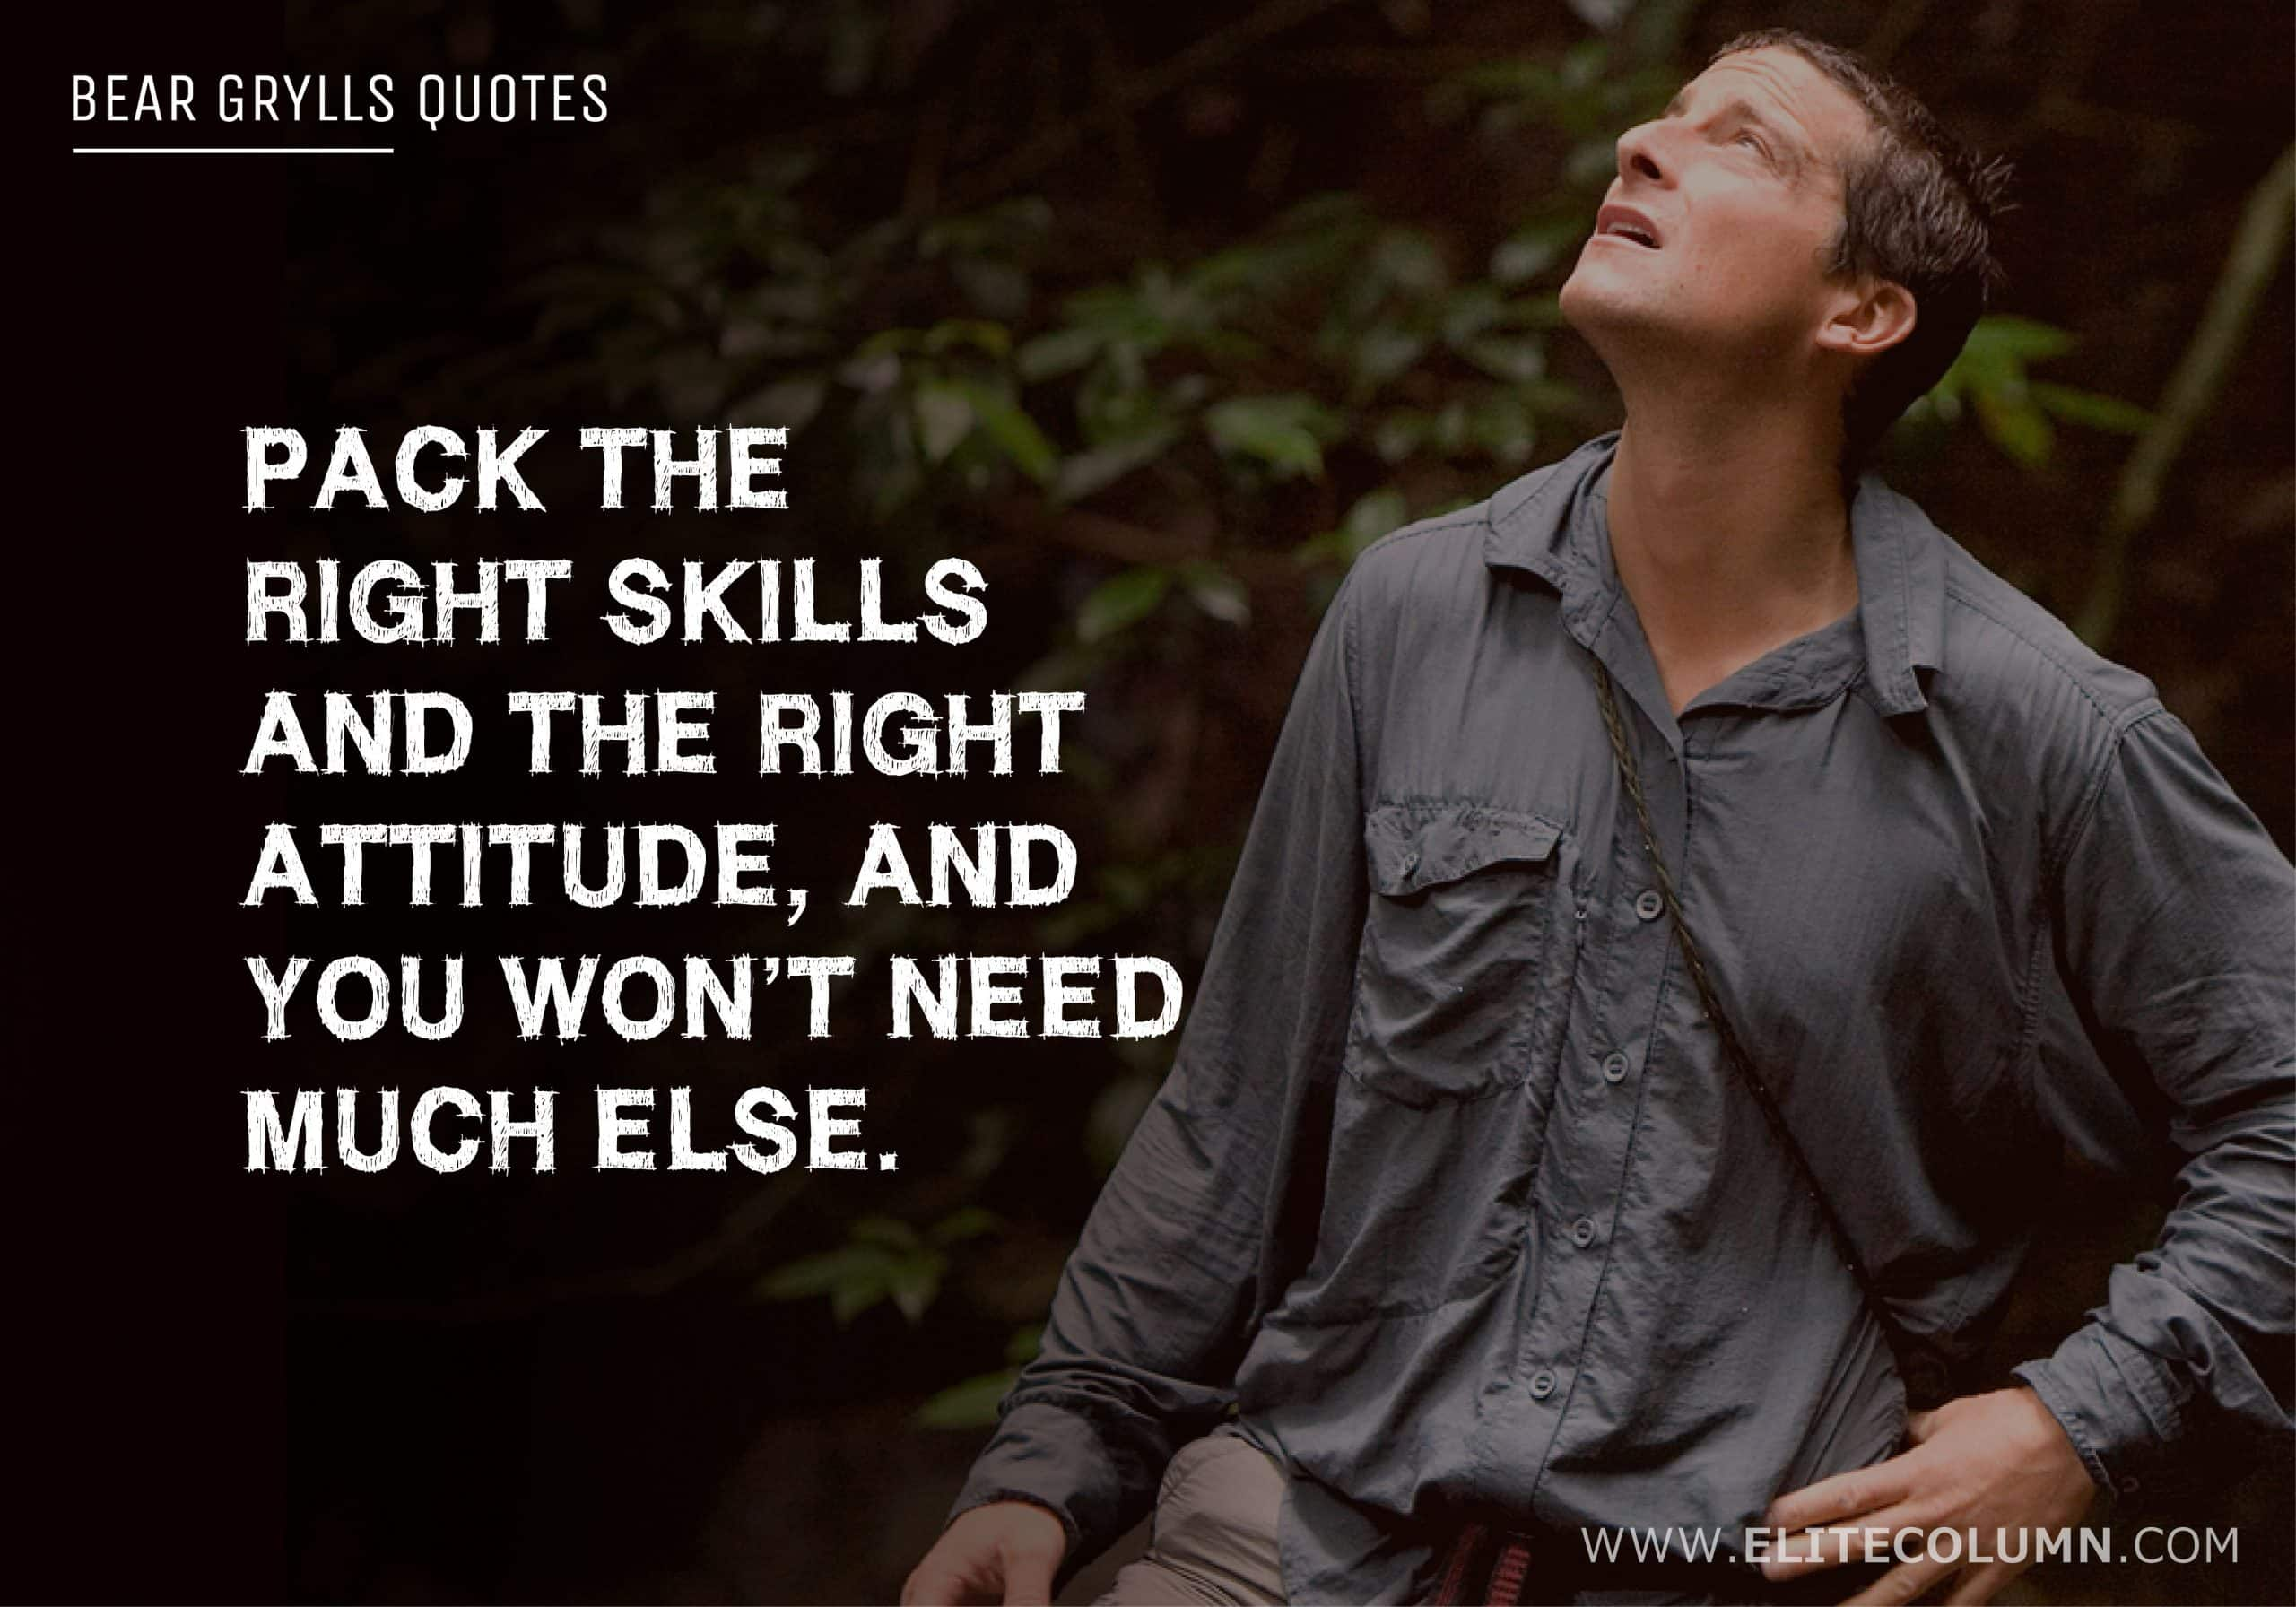 Bear Grylls Quotes (8)